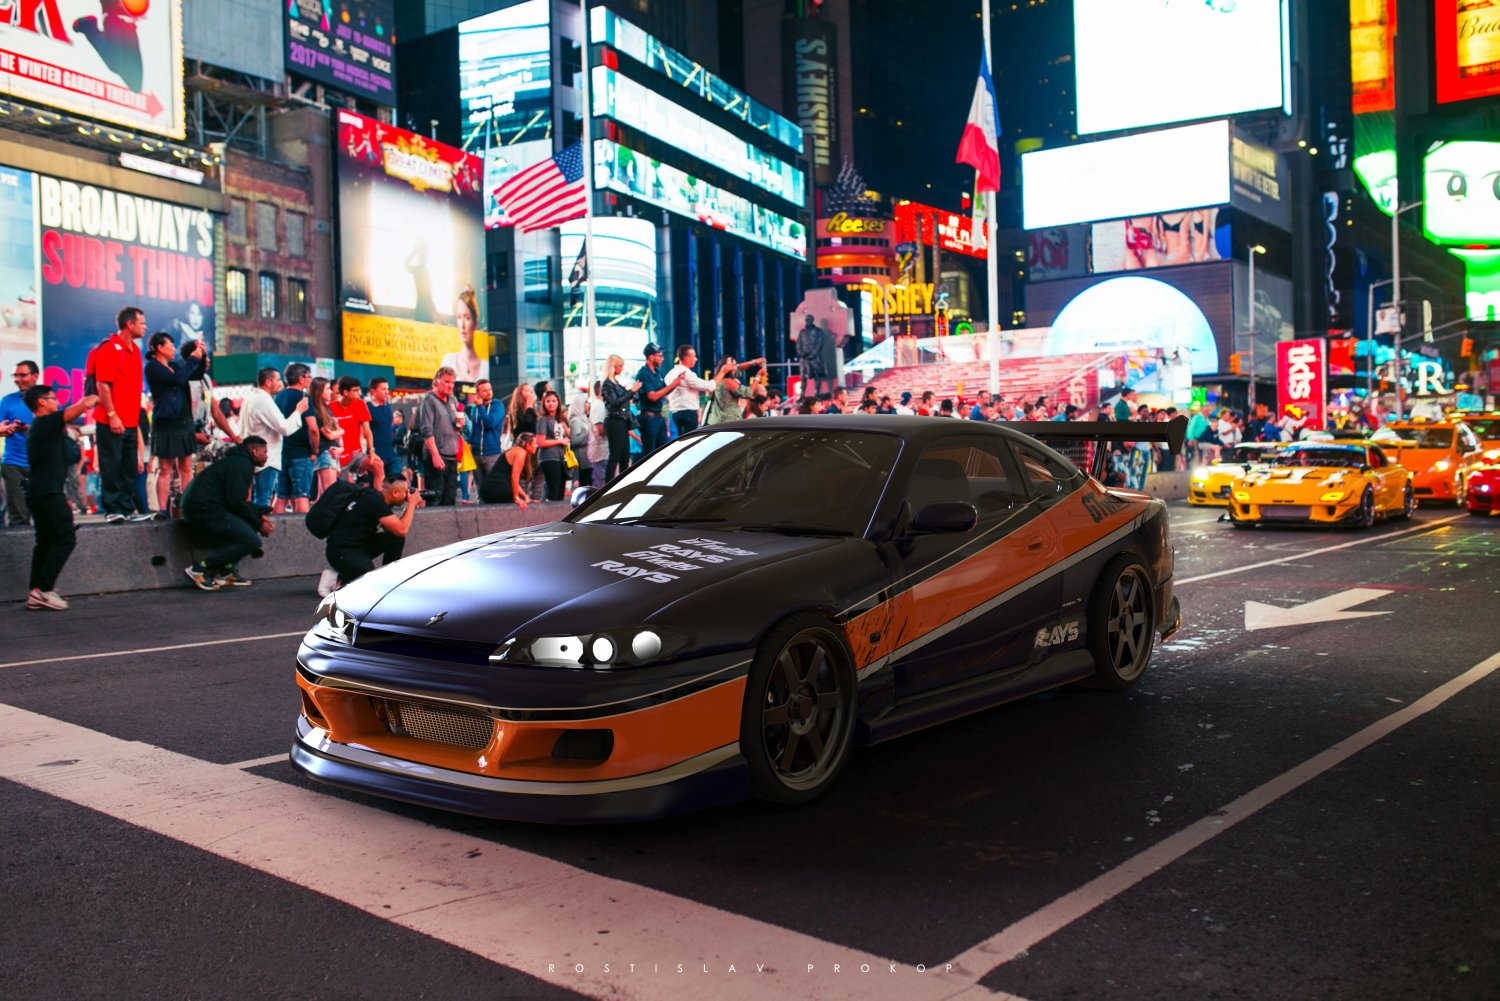 Nissan S15 Silvia Mona Lisa Fast And Furious Tokyo Drift 3d Model In Concept 3dexport